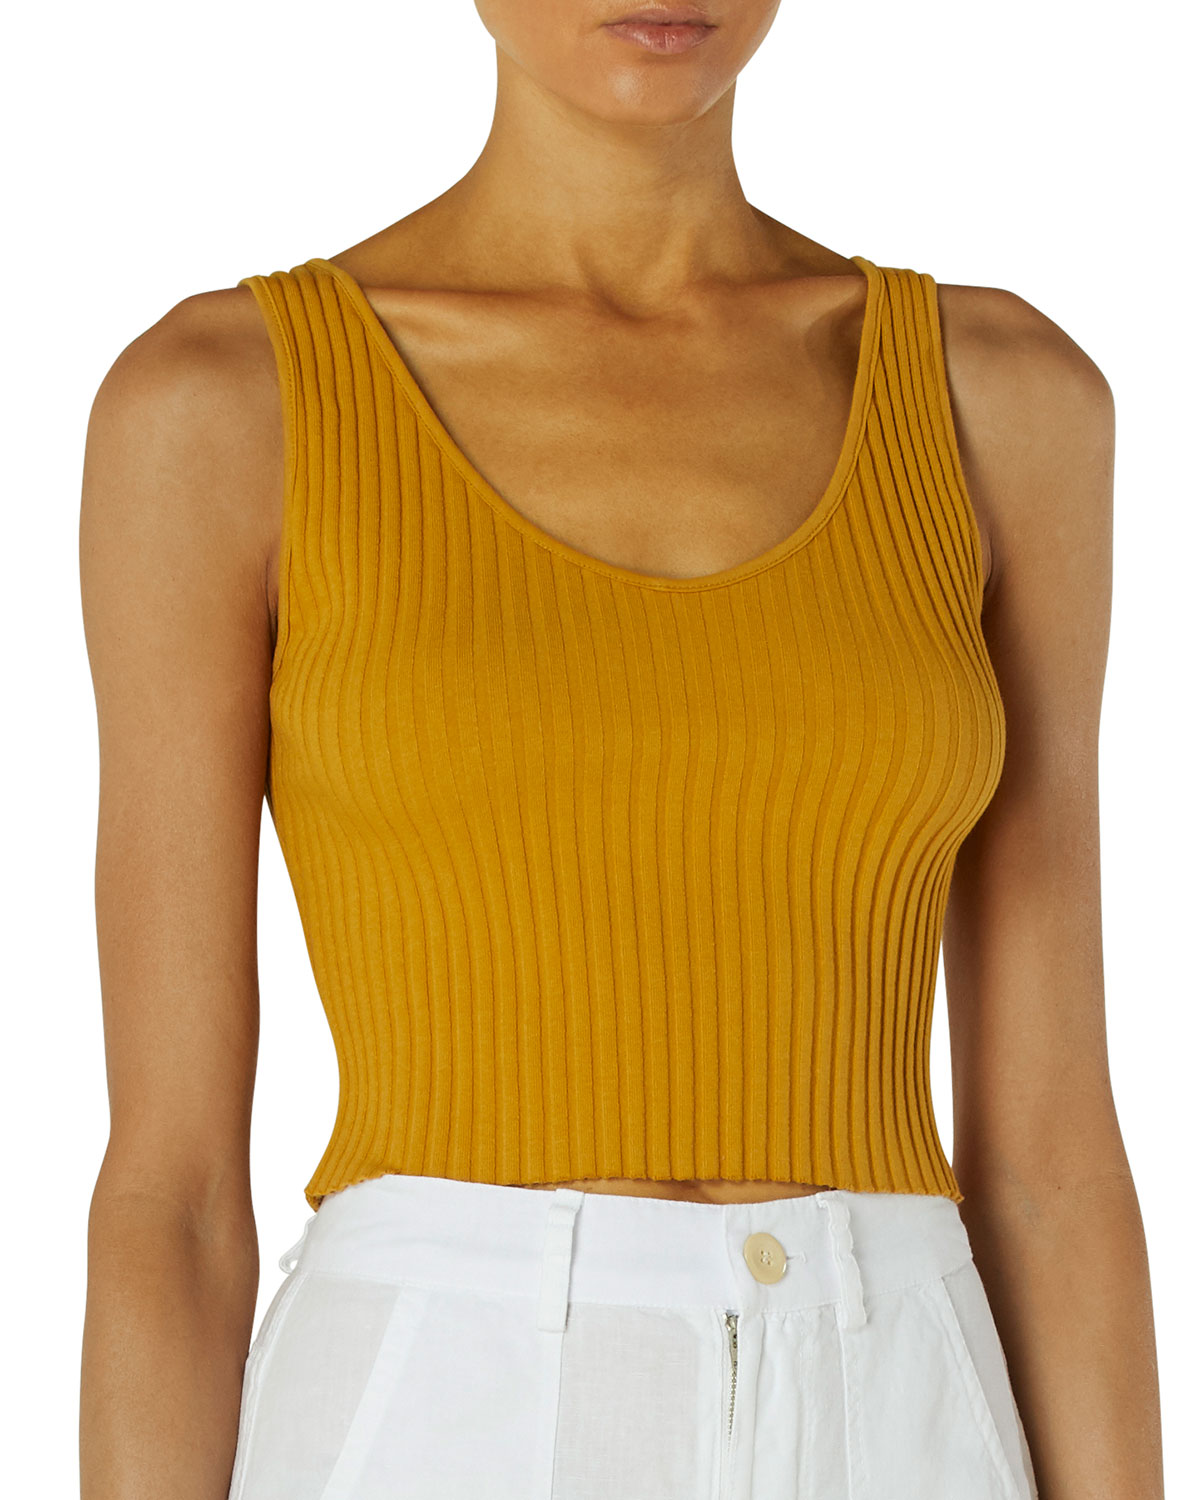 Sweater-Knit Ribbed Crop Top